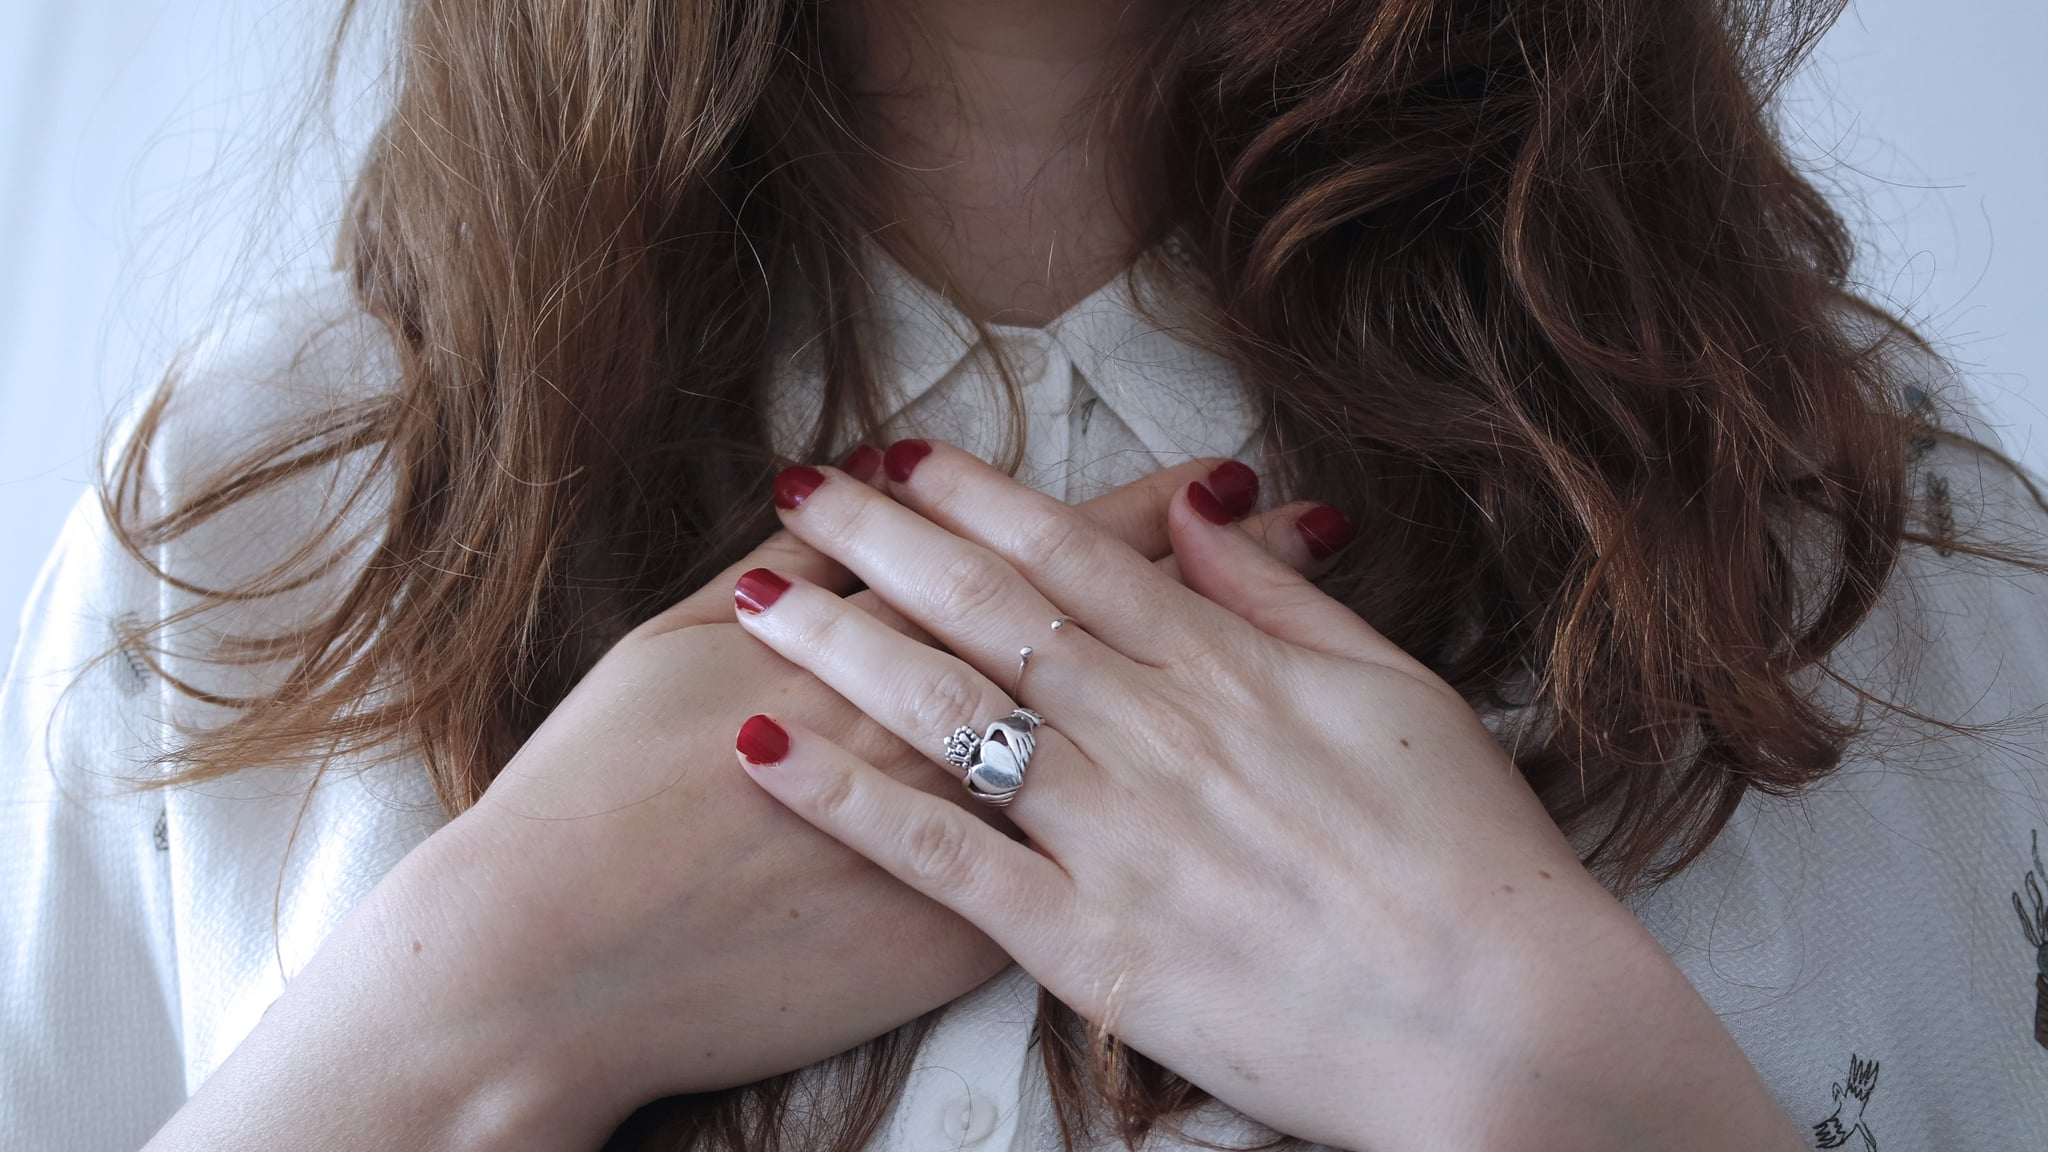 What finger promise rings are worn